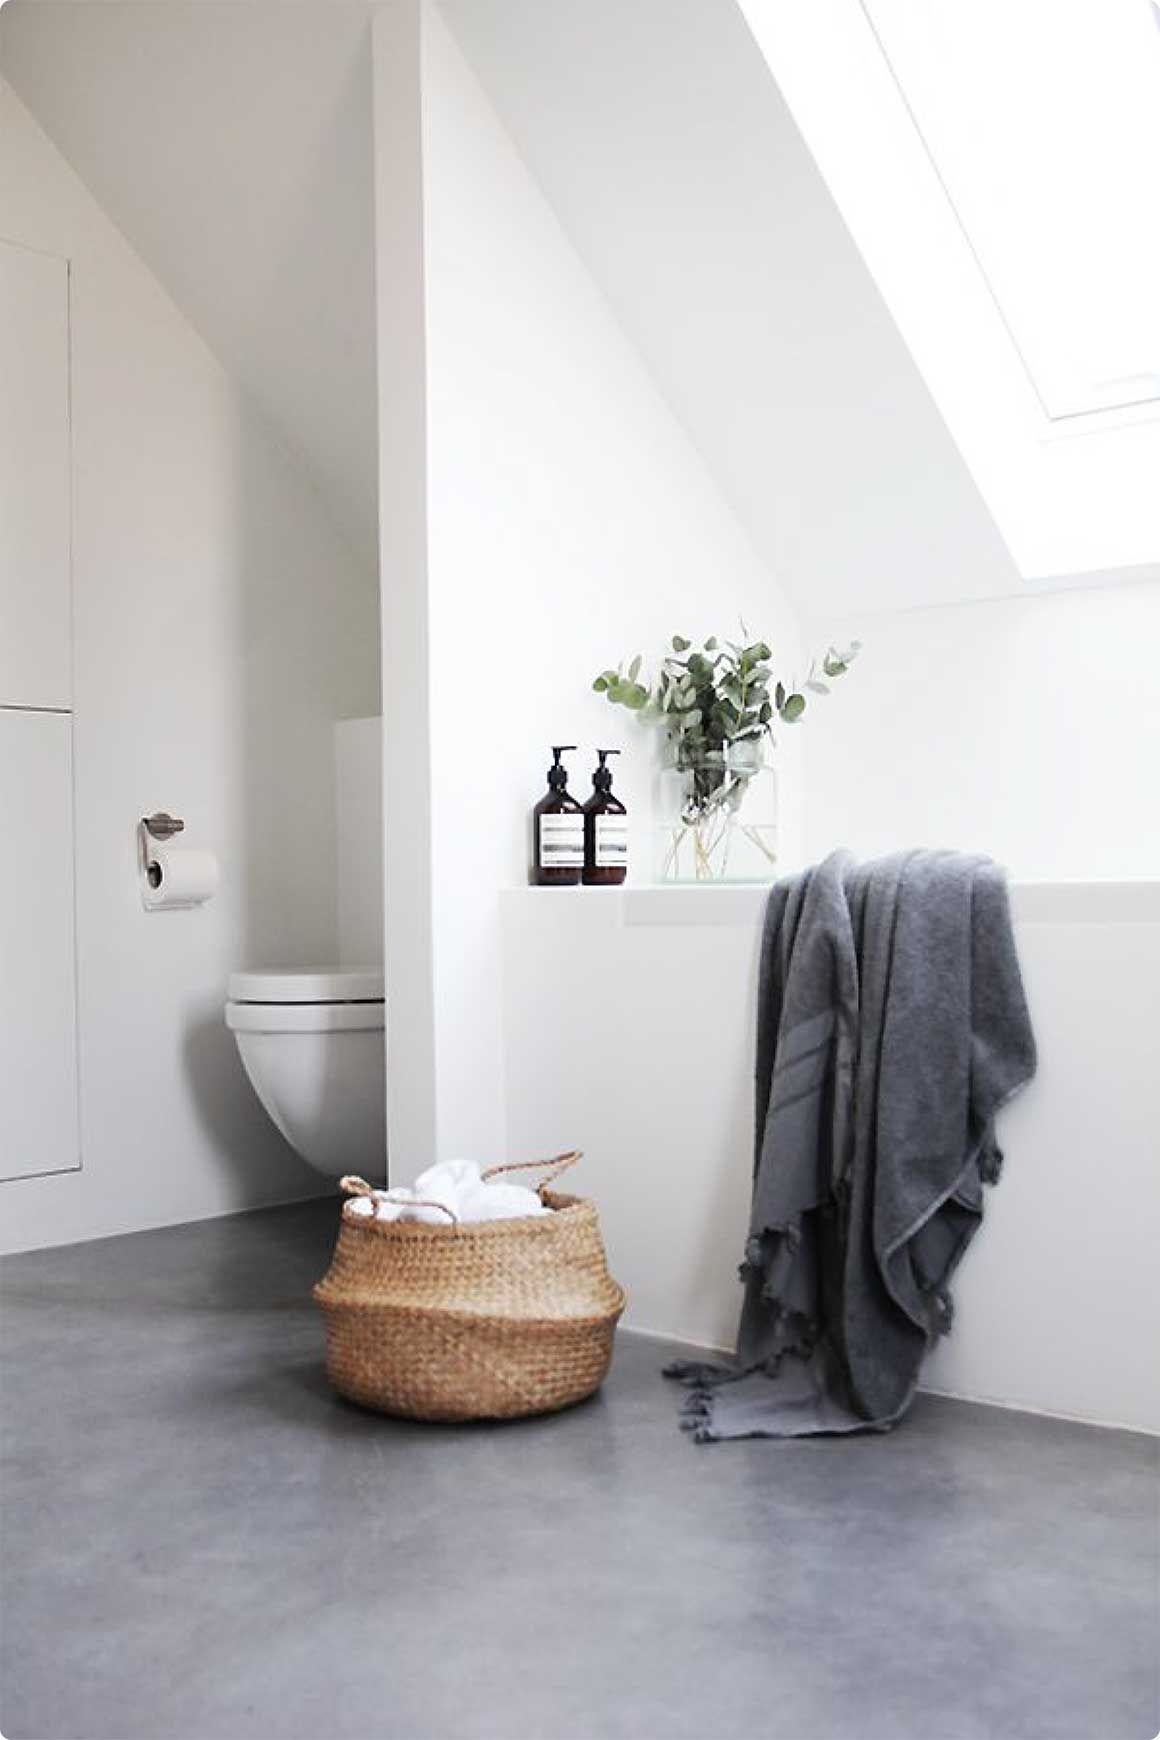 Badezimmer design wohnung bathroom styling  home country and seaside  pinterest  badezimmer